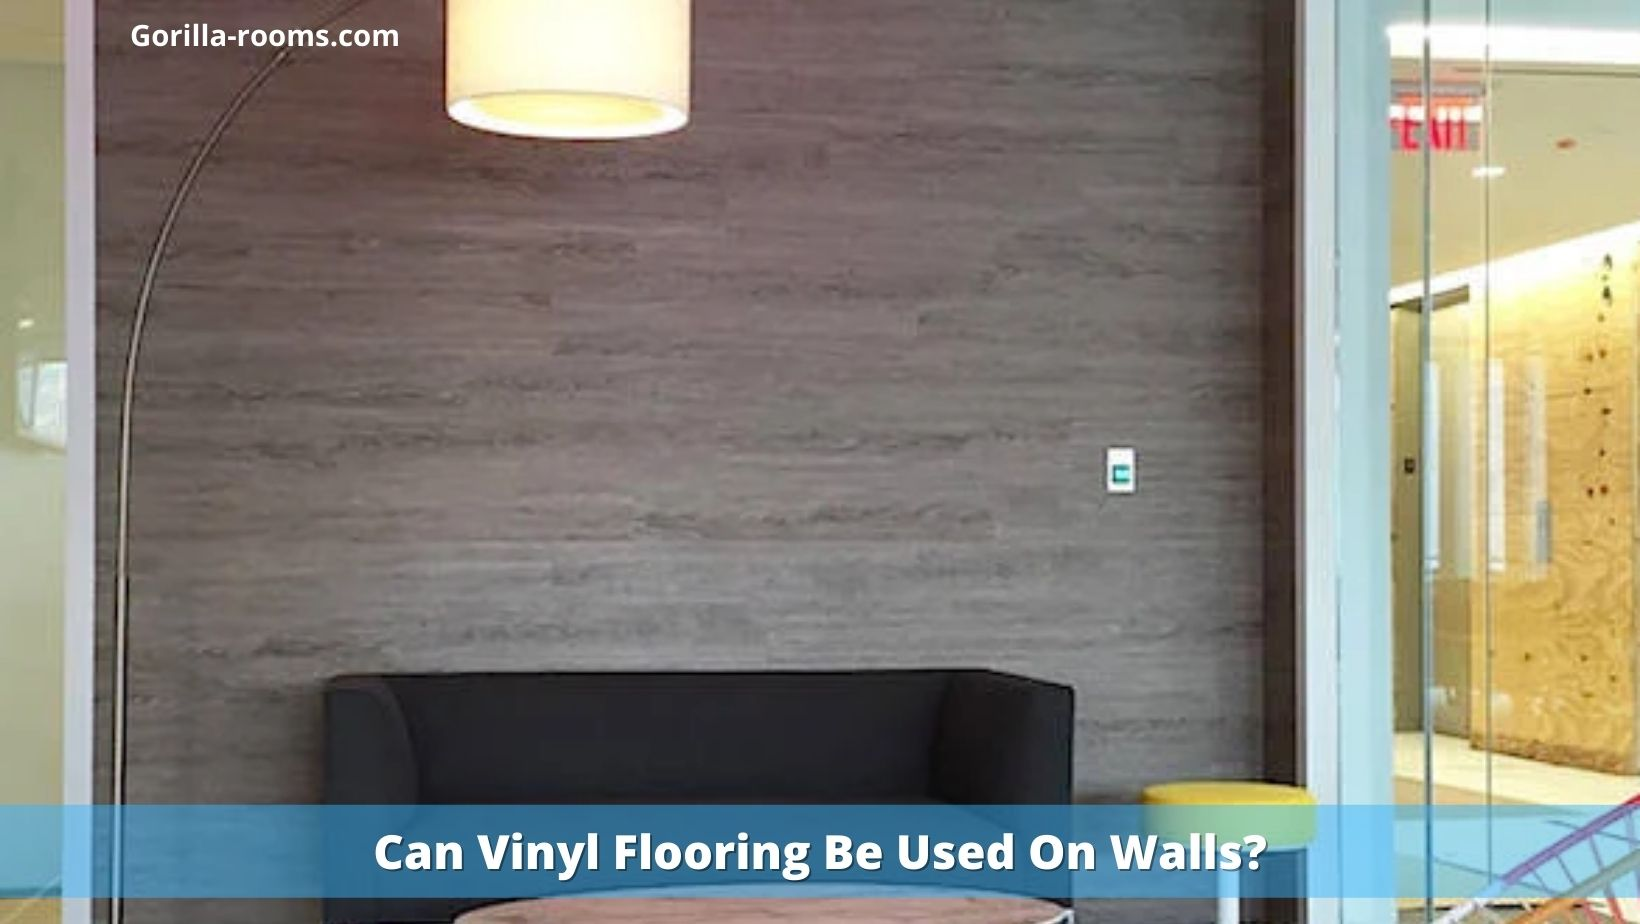 Can Vinyl Flooring Be Used On Walls?